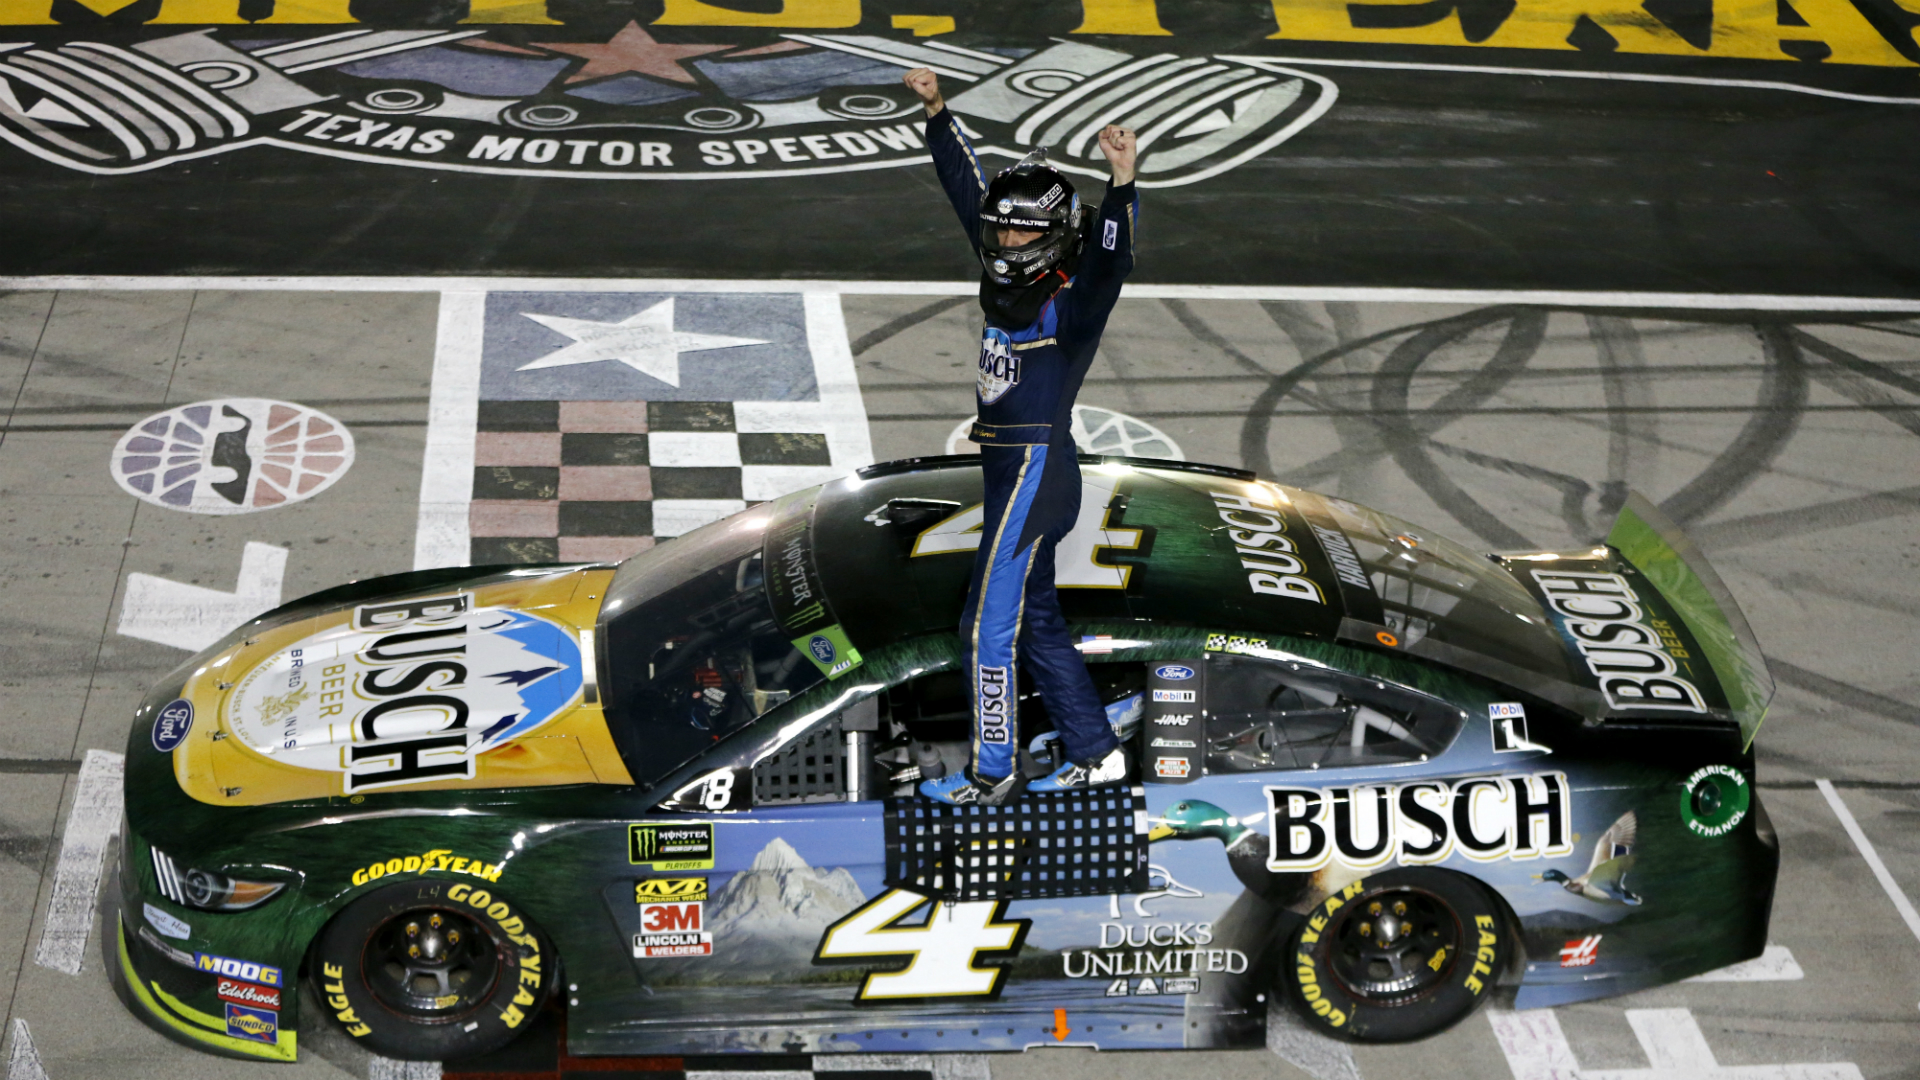 NASCAR at Texas results: Kevin Harvick wins from the pole in stop-and-start race – Sporting News